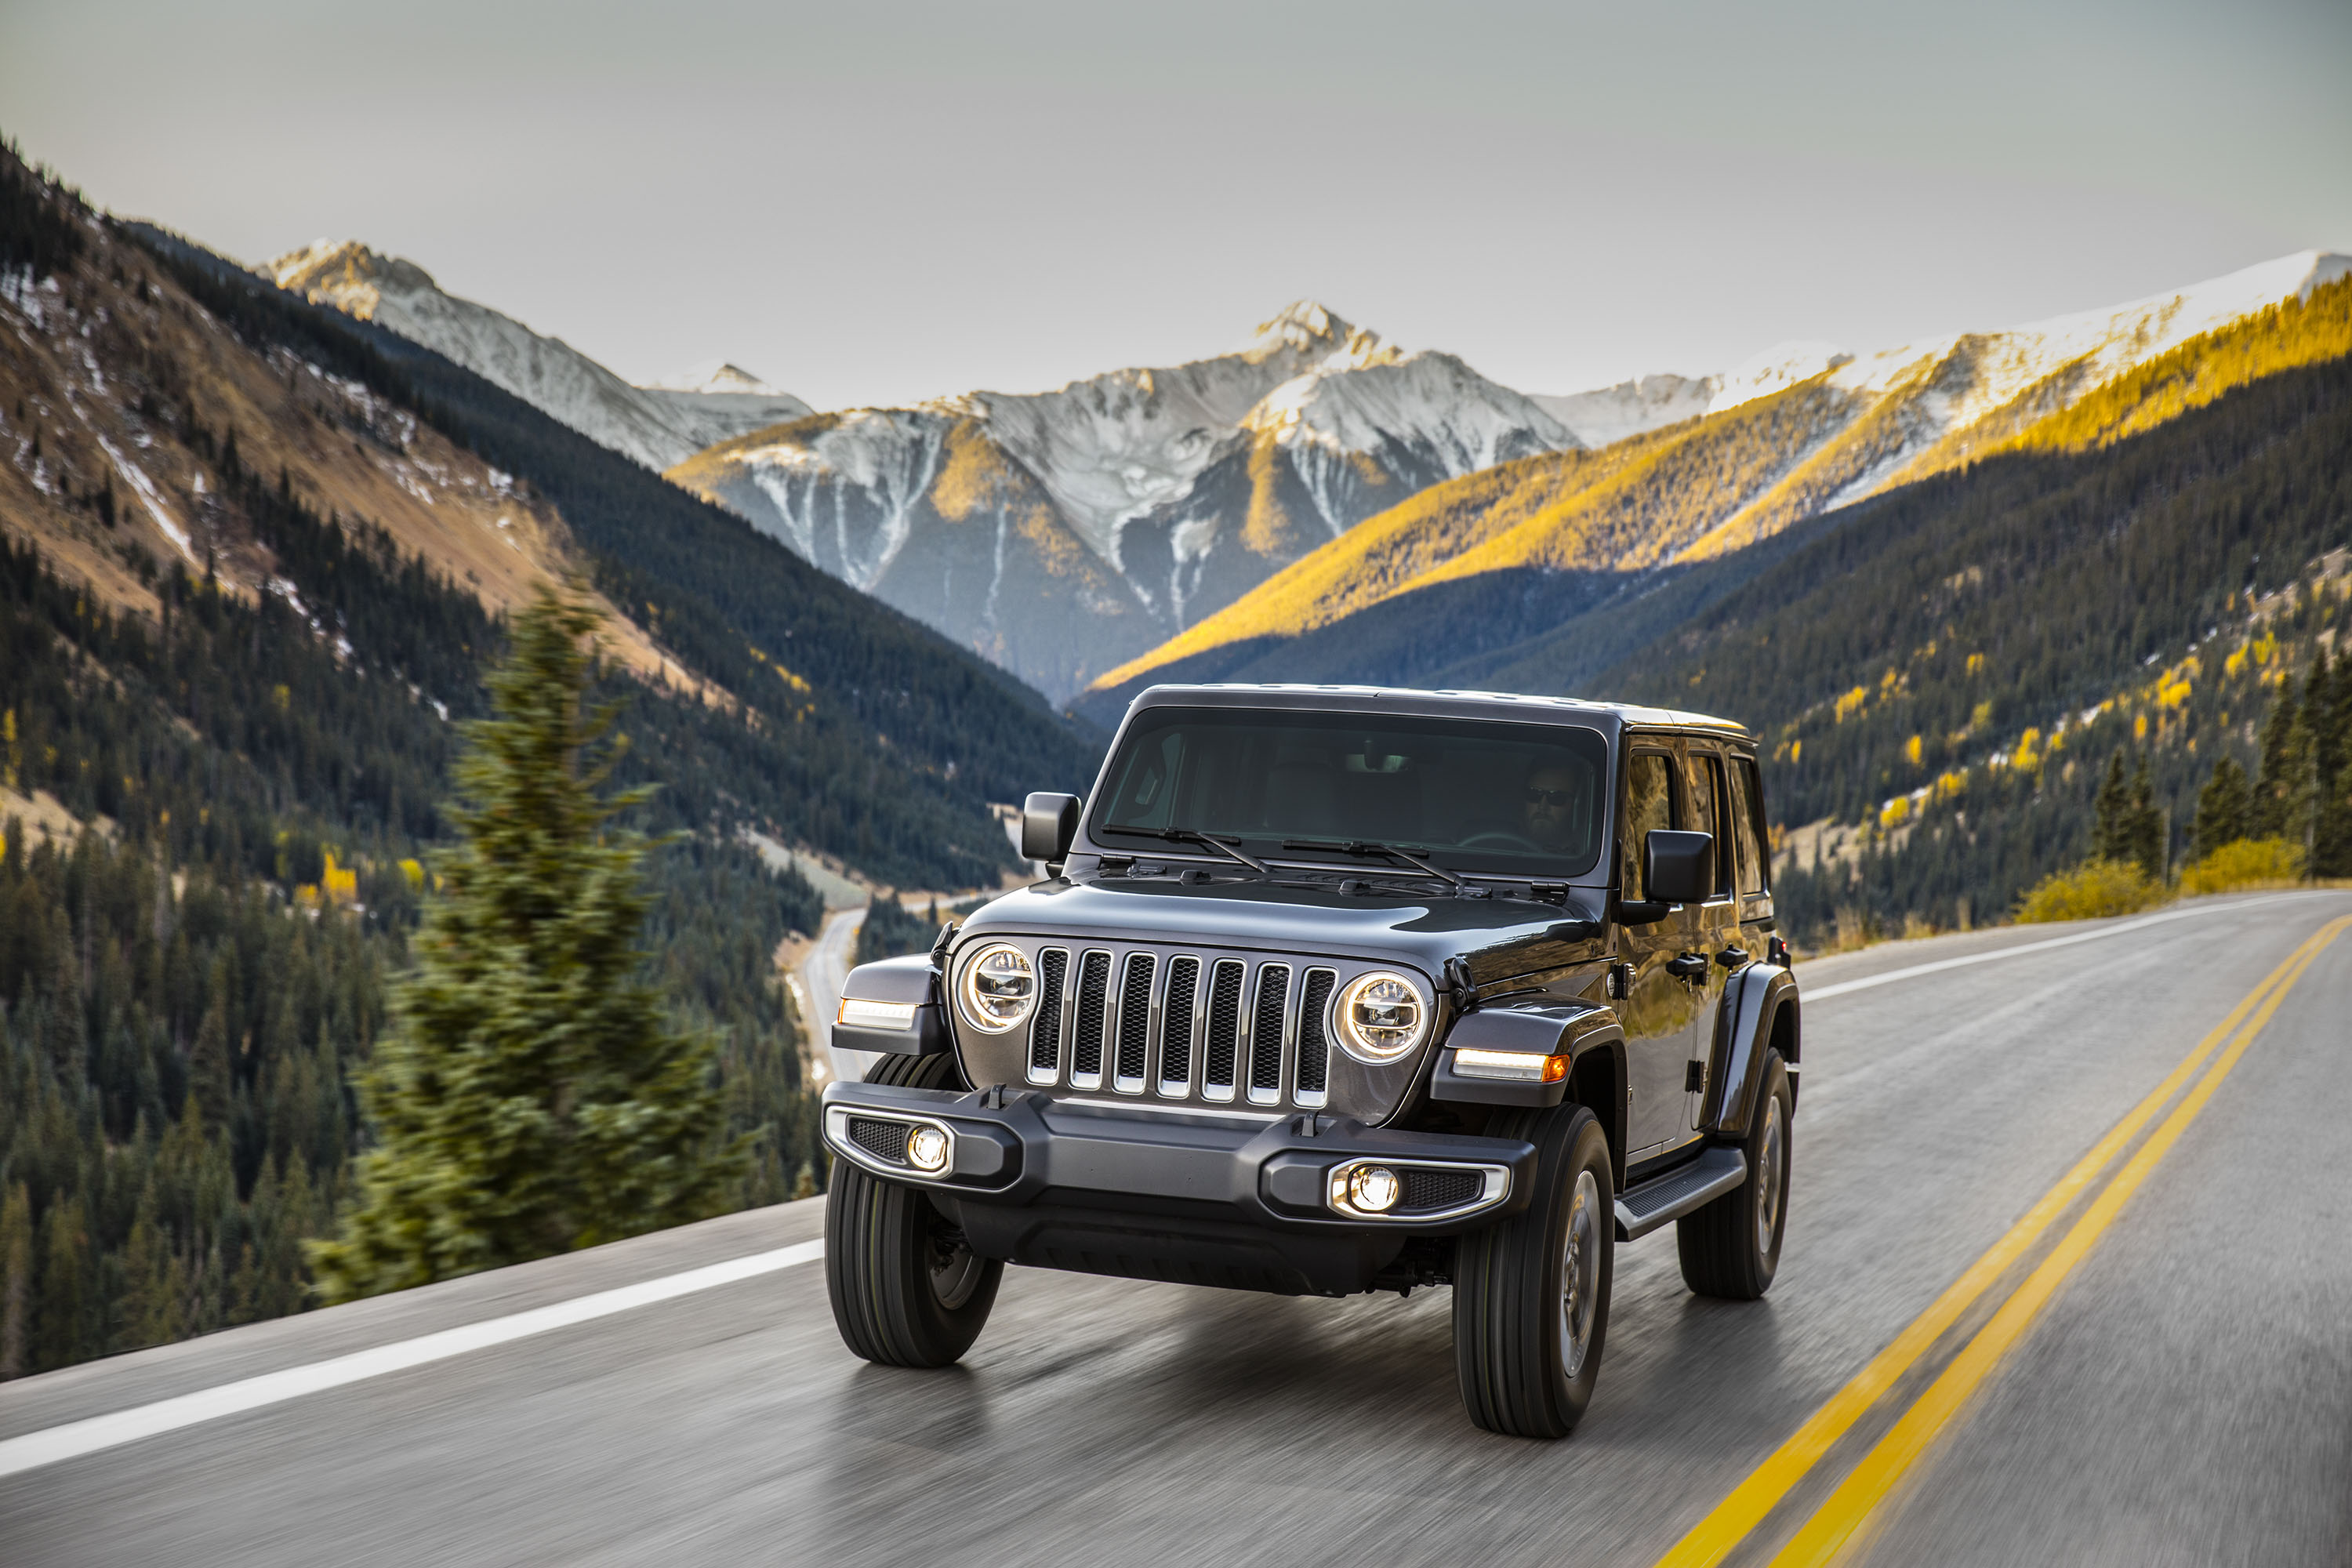 2018 Jeep Wrangler 20 Liter Turbo Specifications Top Speed 1997 Fuel Filter